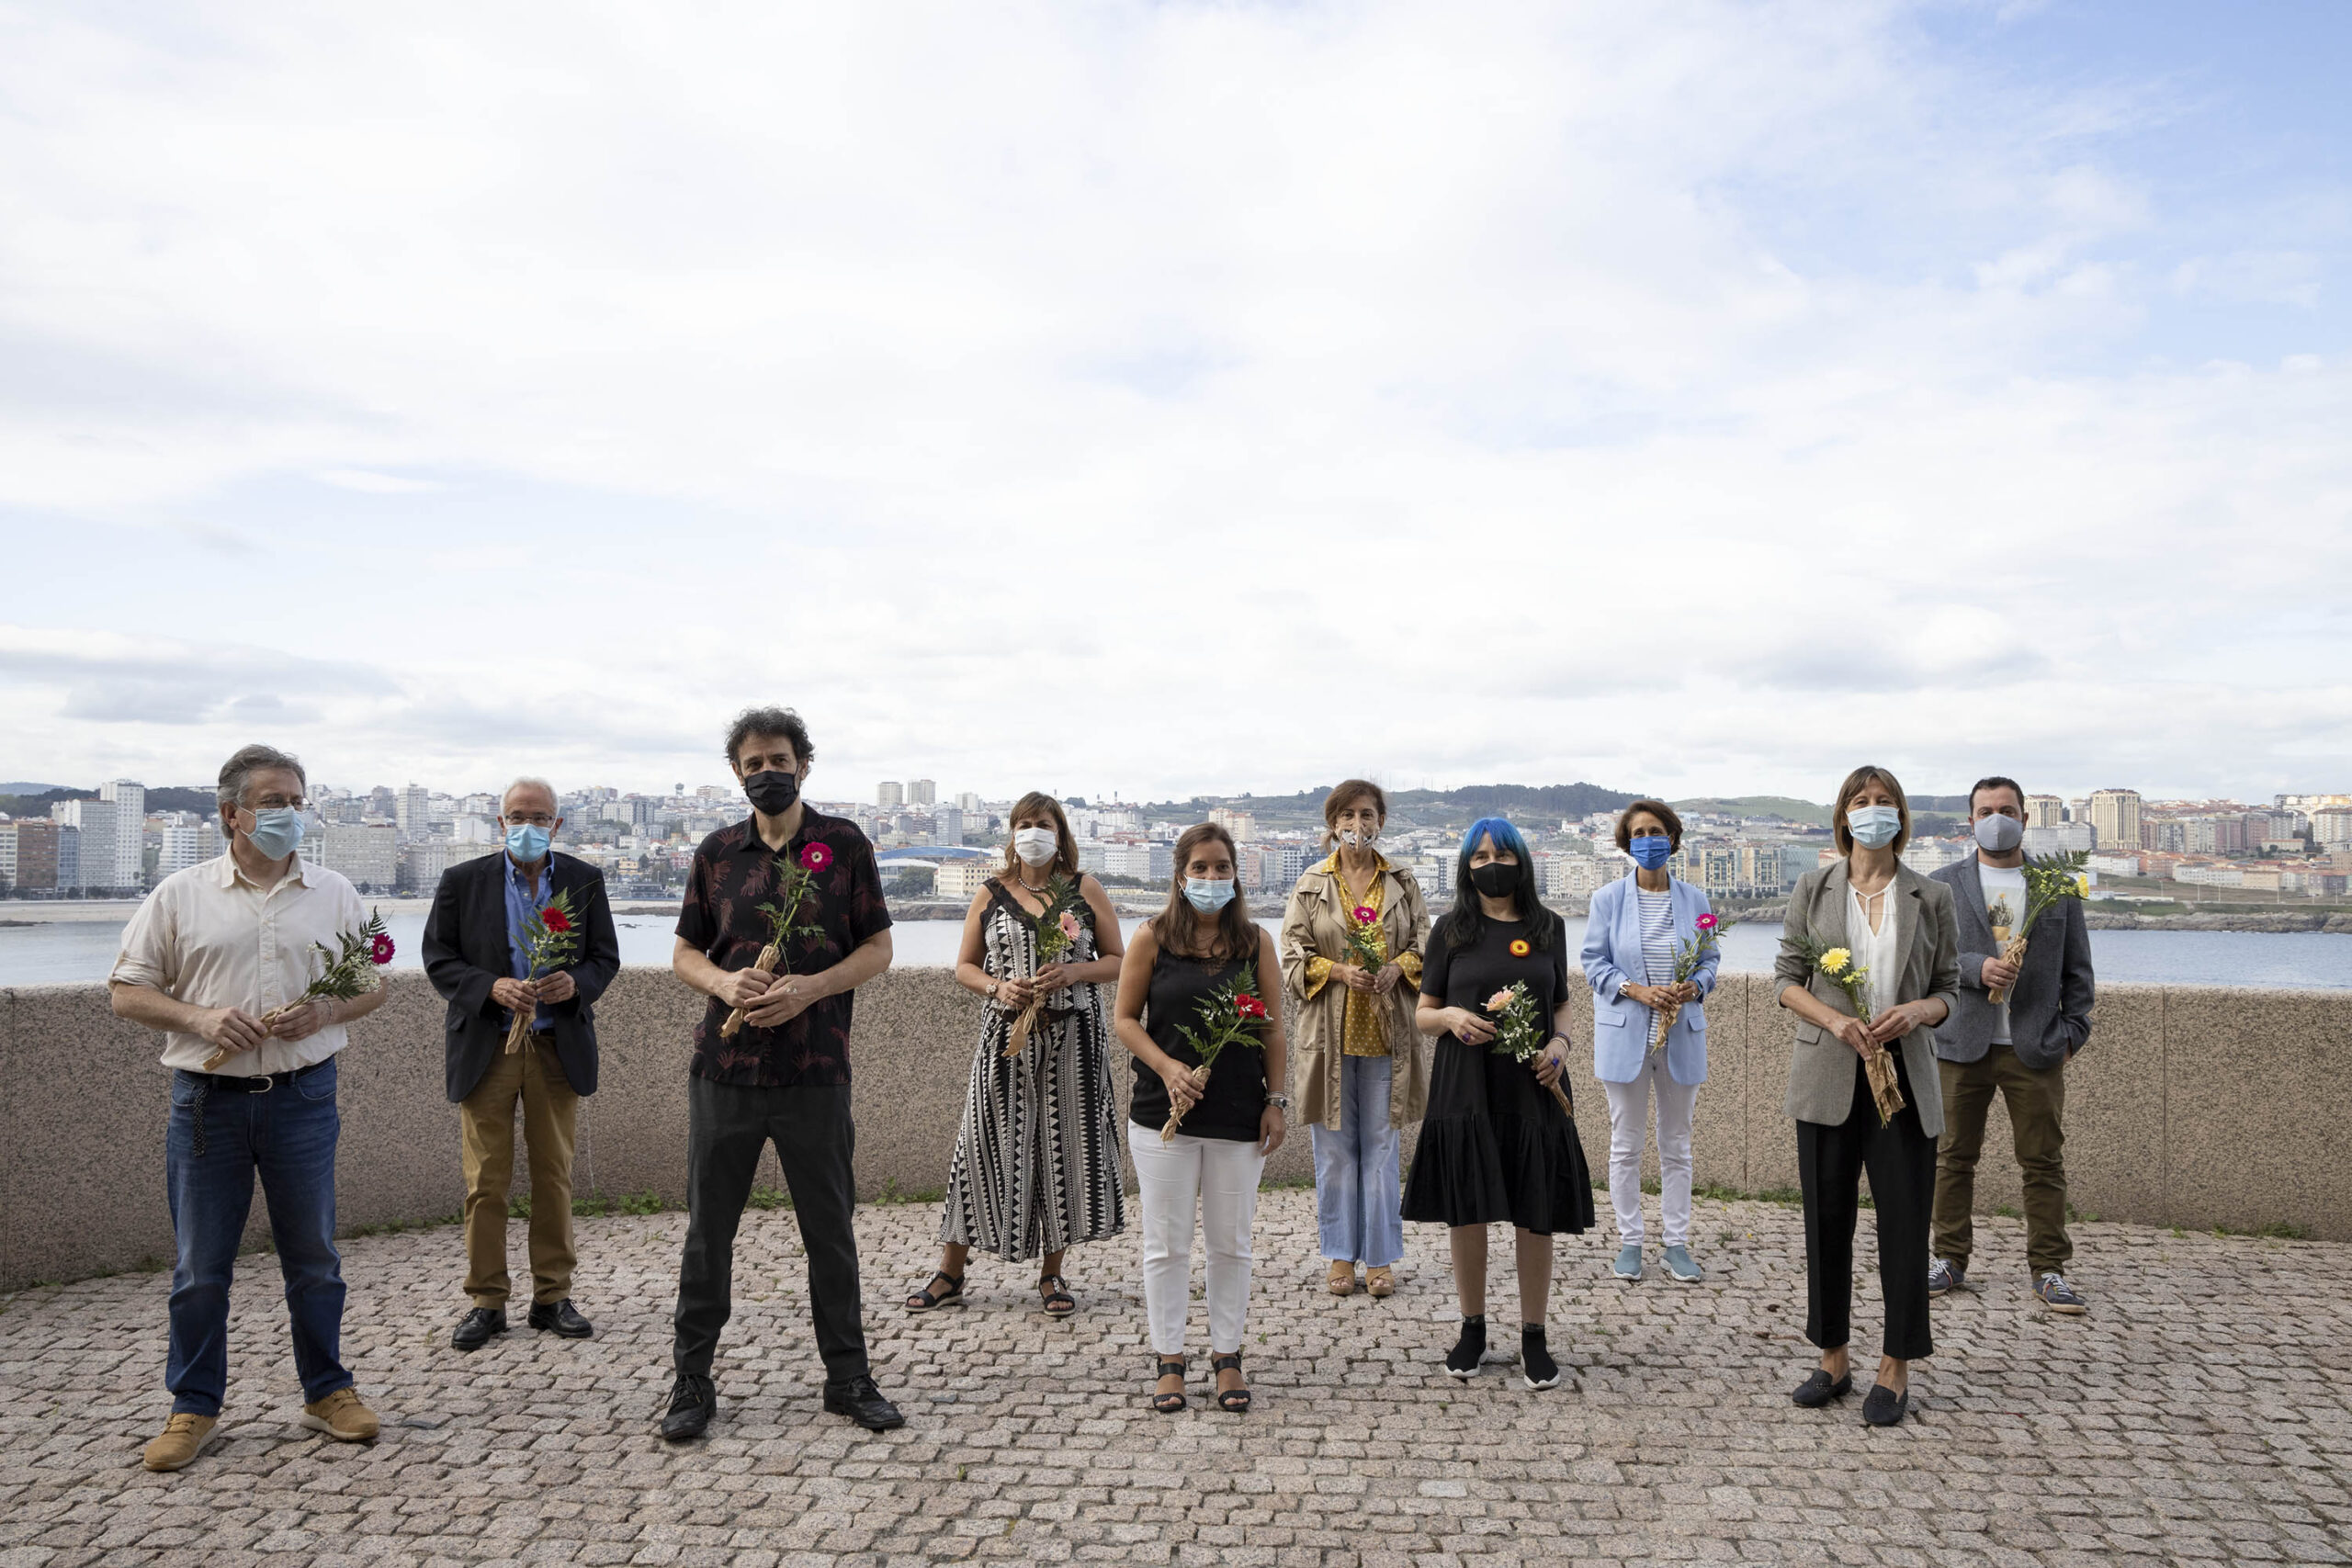 Expanded cinema contents and film performances by Valentina Alvarado, Carlos Vásquez, Tânia Dinis, and Miwa Matreyek – protagonists of (S8) 2020's on-site activities